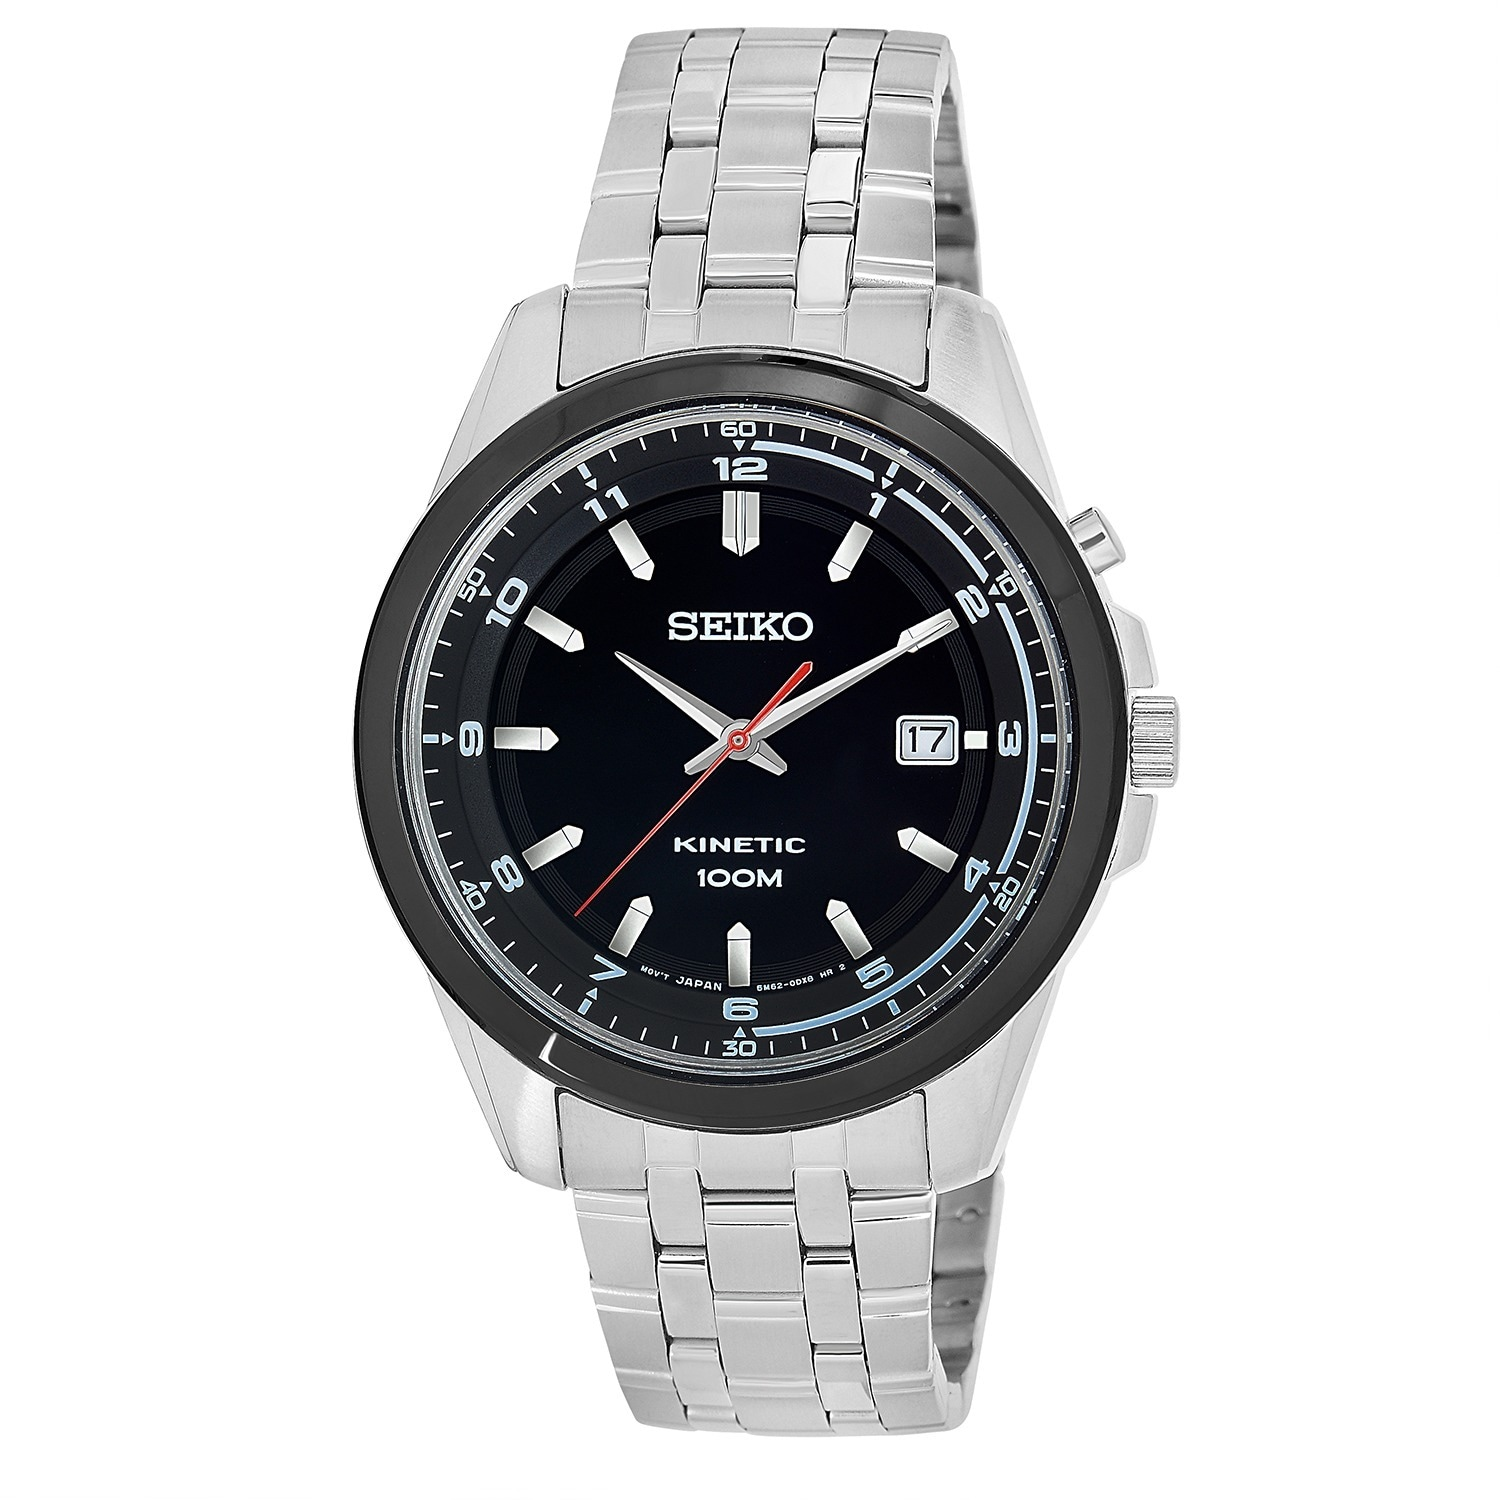 Seiko Men's SKA635 'Core' Stainless Steel Power Reserve Watch at Sears.com